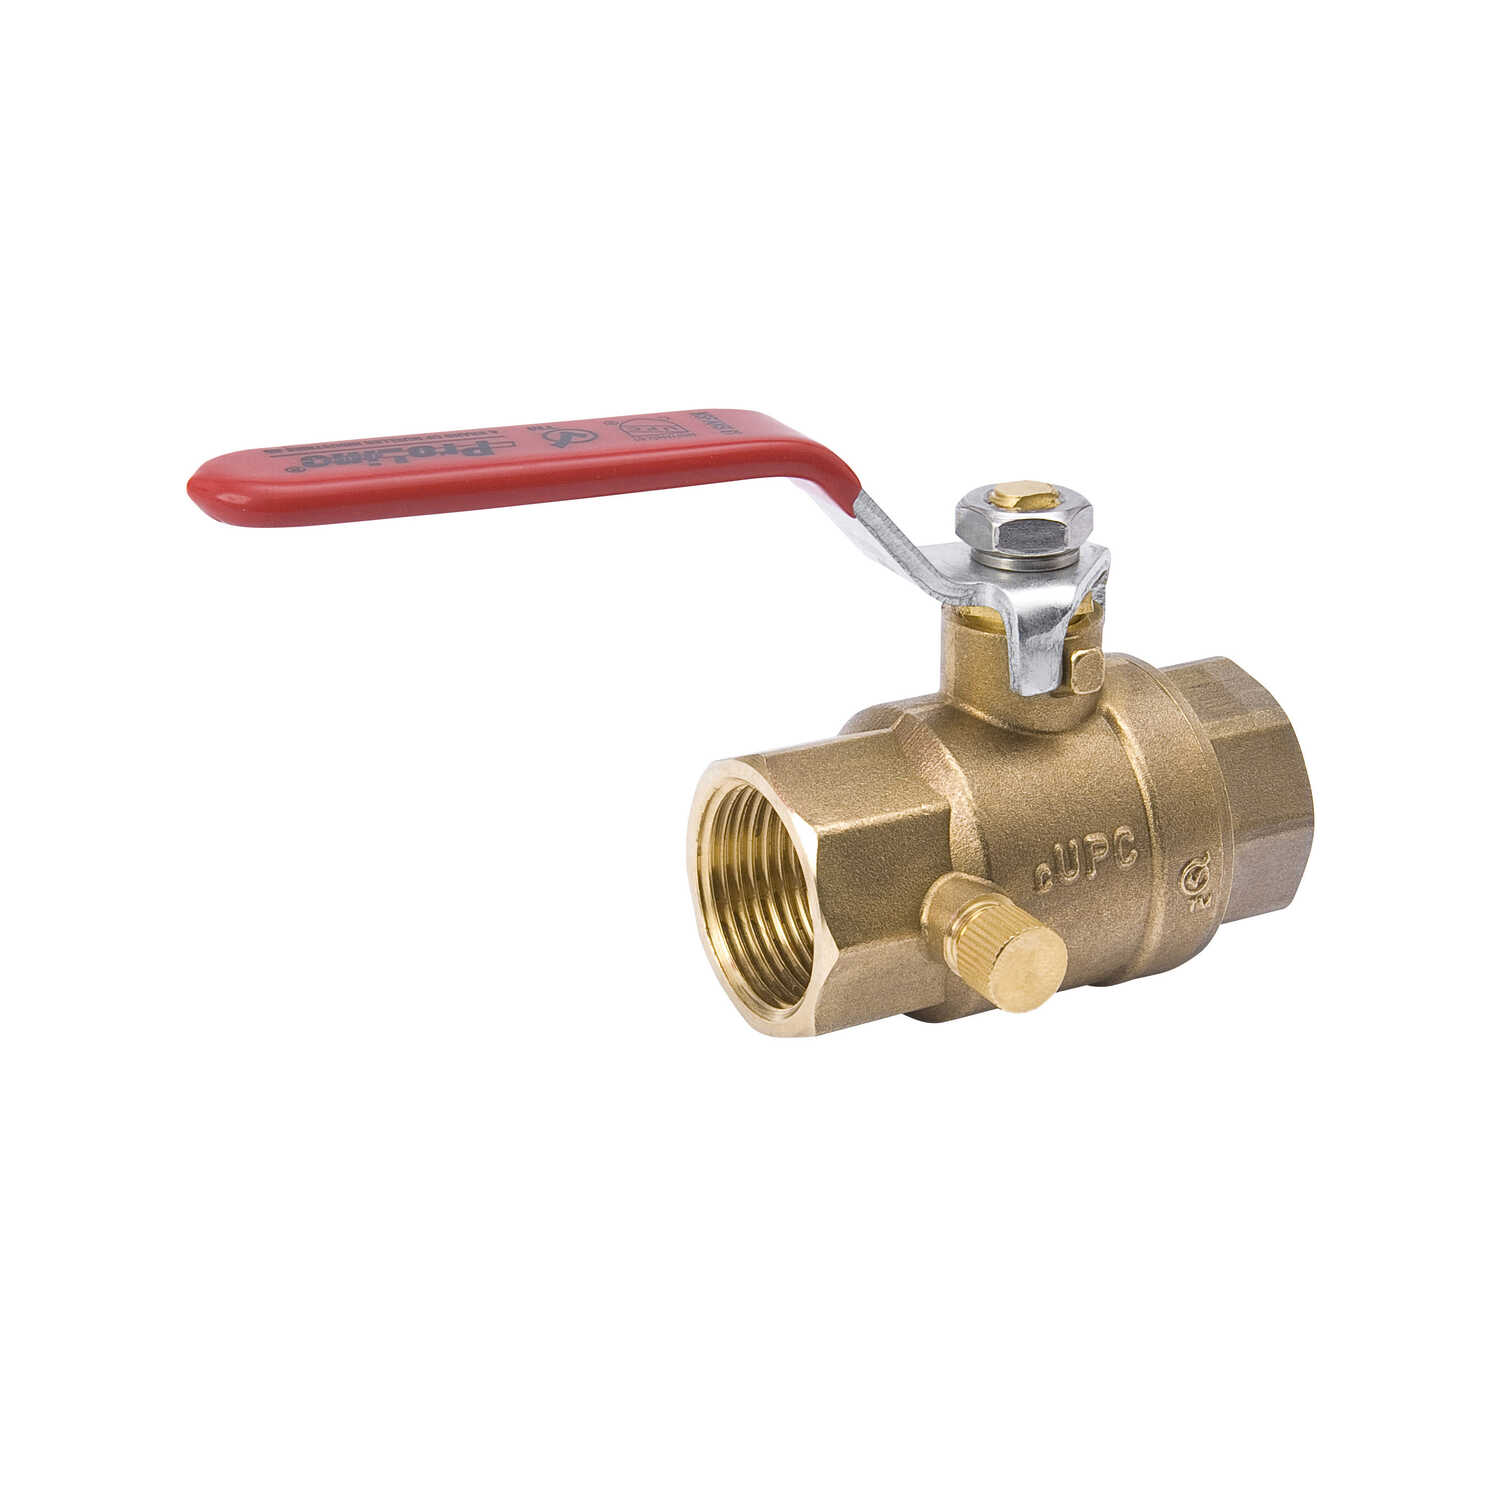 Mueller  Ball Valve  1/2 in. FPT   x 1/2 in. Dia. FPT  Brass  Side Drain